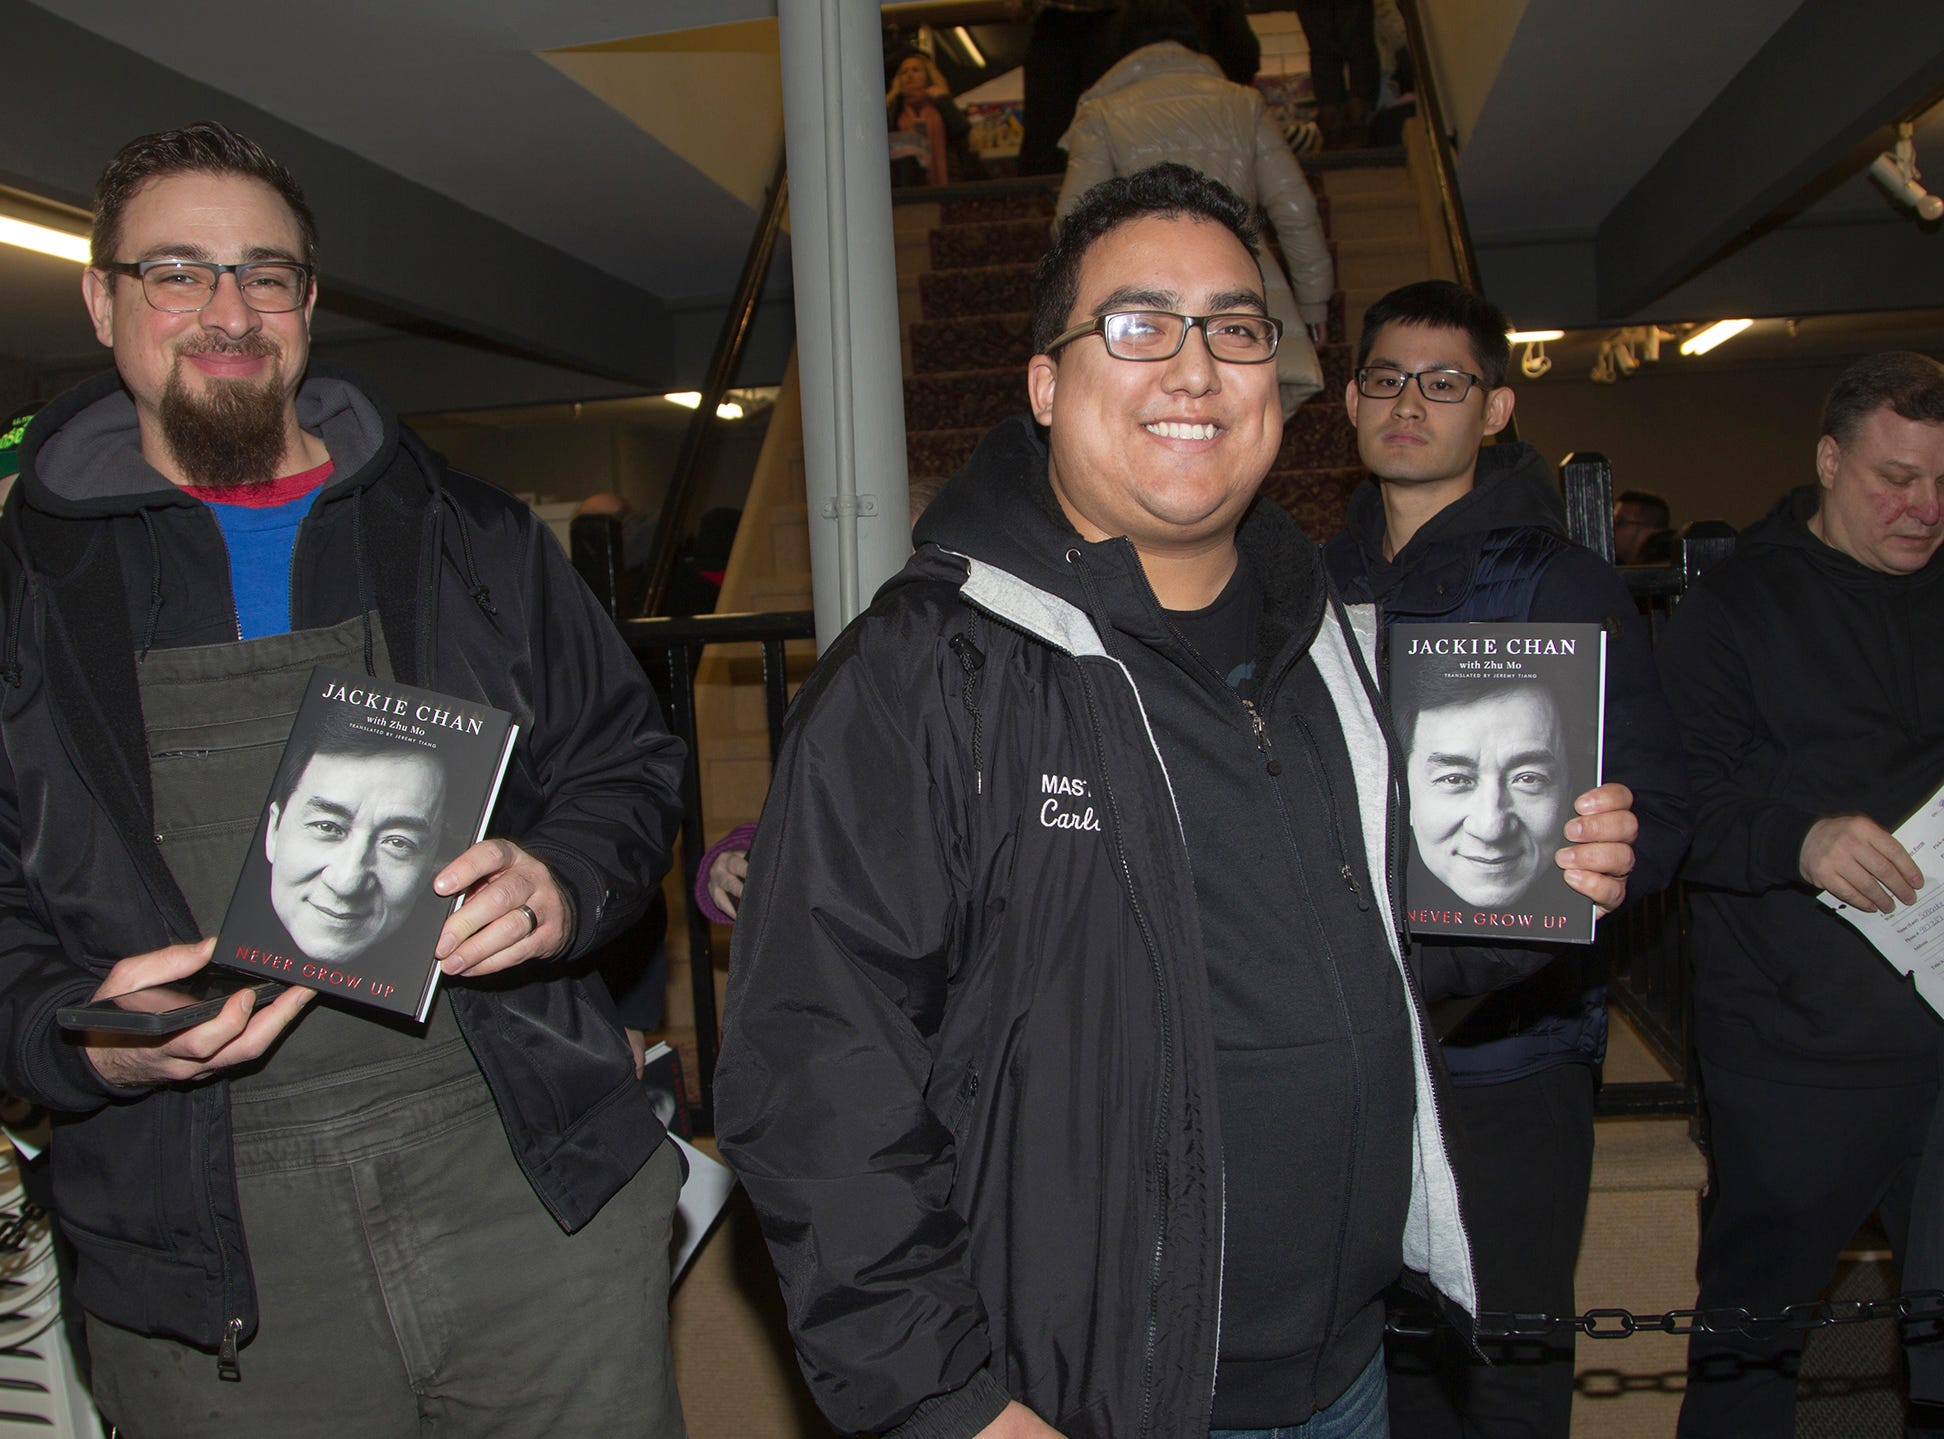 """John and Carlos. Jackie Chan greets fans at Bookends in Ridgewood while signing his new book, """"Never Grow Up."""" 01/21/2019"""